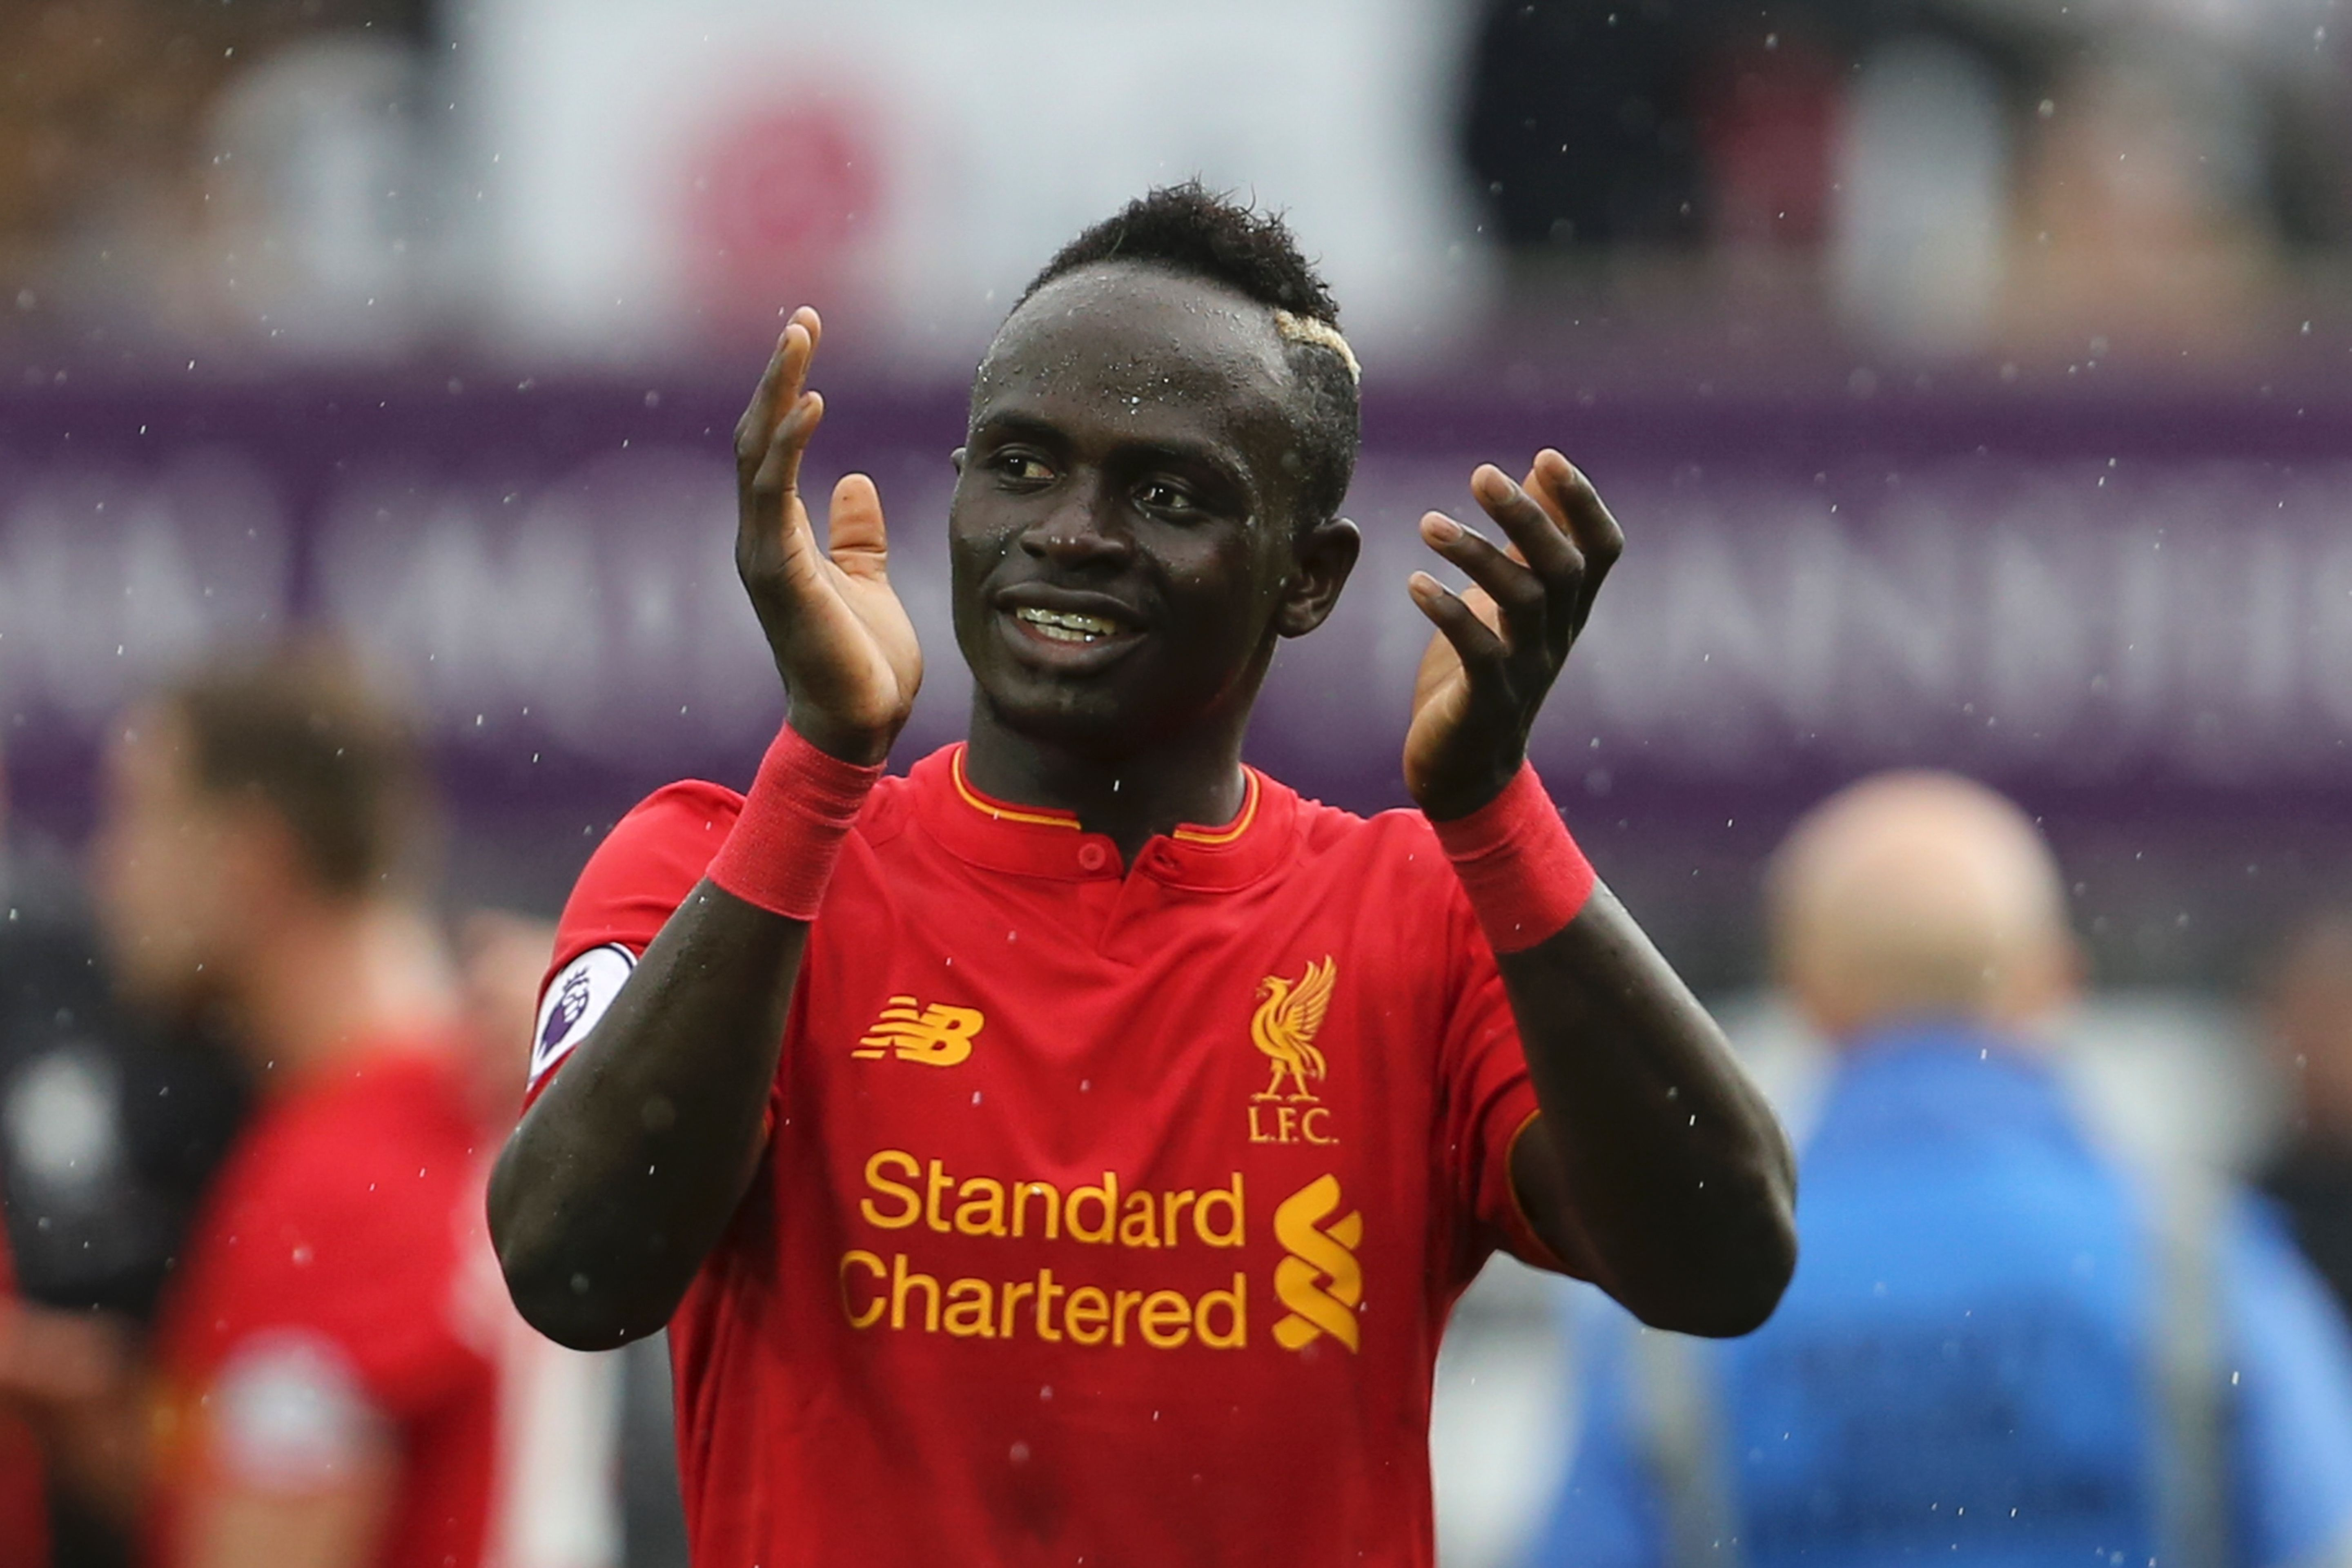 Liverpool's Senegalese midfielder Sadio Mane applauds at the end of the English Premier League football match between Swansea City and Liverpool at The Liberty Stadium in Swansea, south Wales on October 1, 2016. / AFP / GEOFF CADDICK / RESTRICTED TO EDITORIAL USE. No use with unauthorized audio, video, data, fixture lists, club/league logos or 'live' services. Online in-match use limited to 75 images, no video emulation. No use in betting, games or single club/league/player publications.  /         (Photo credit should read GEOFF CADDICK/AFP/Getty Images)